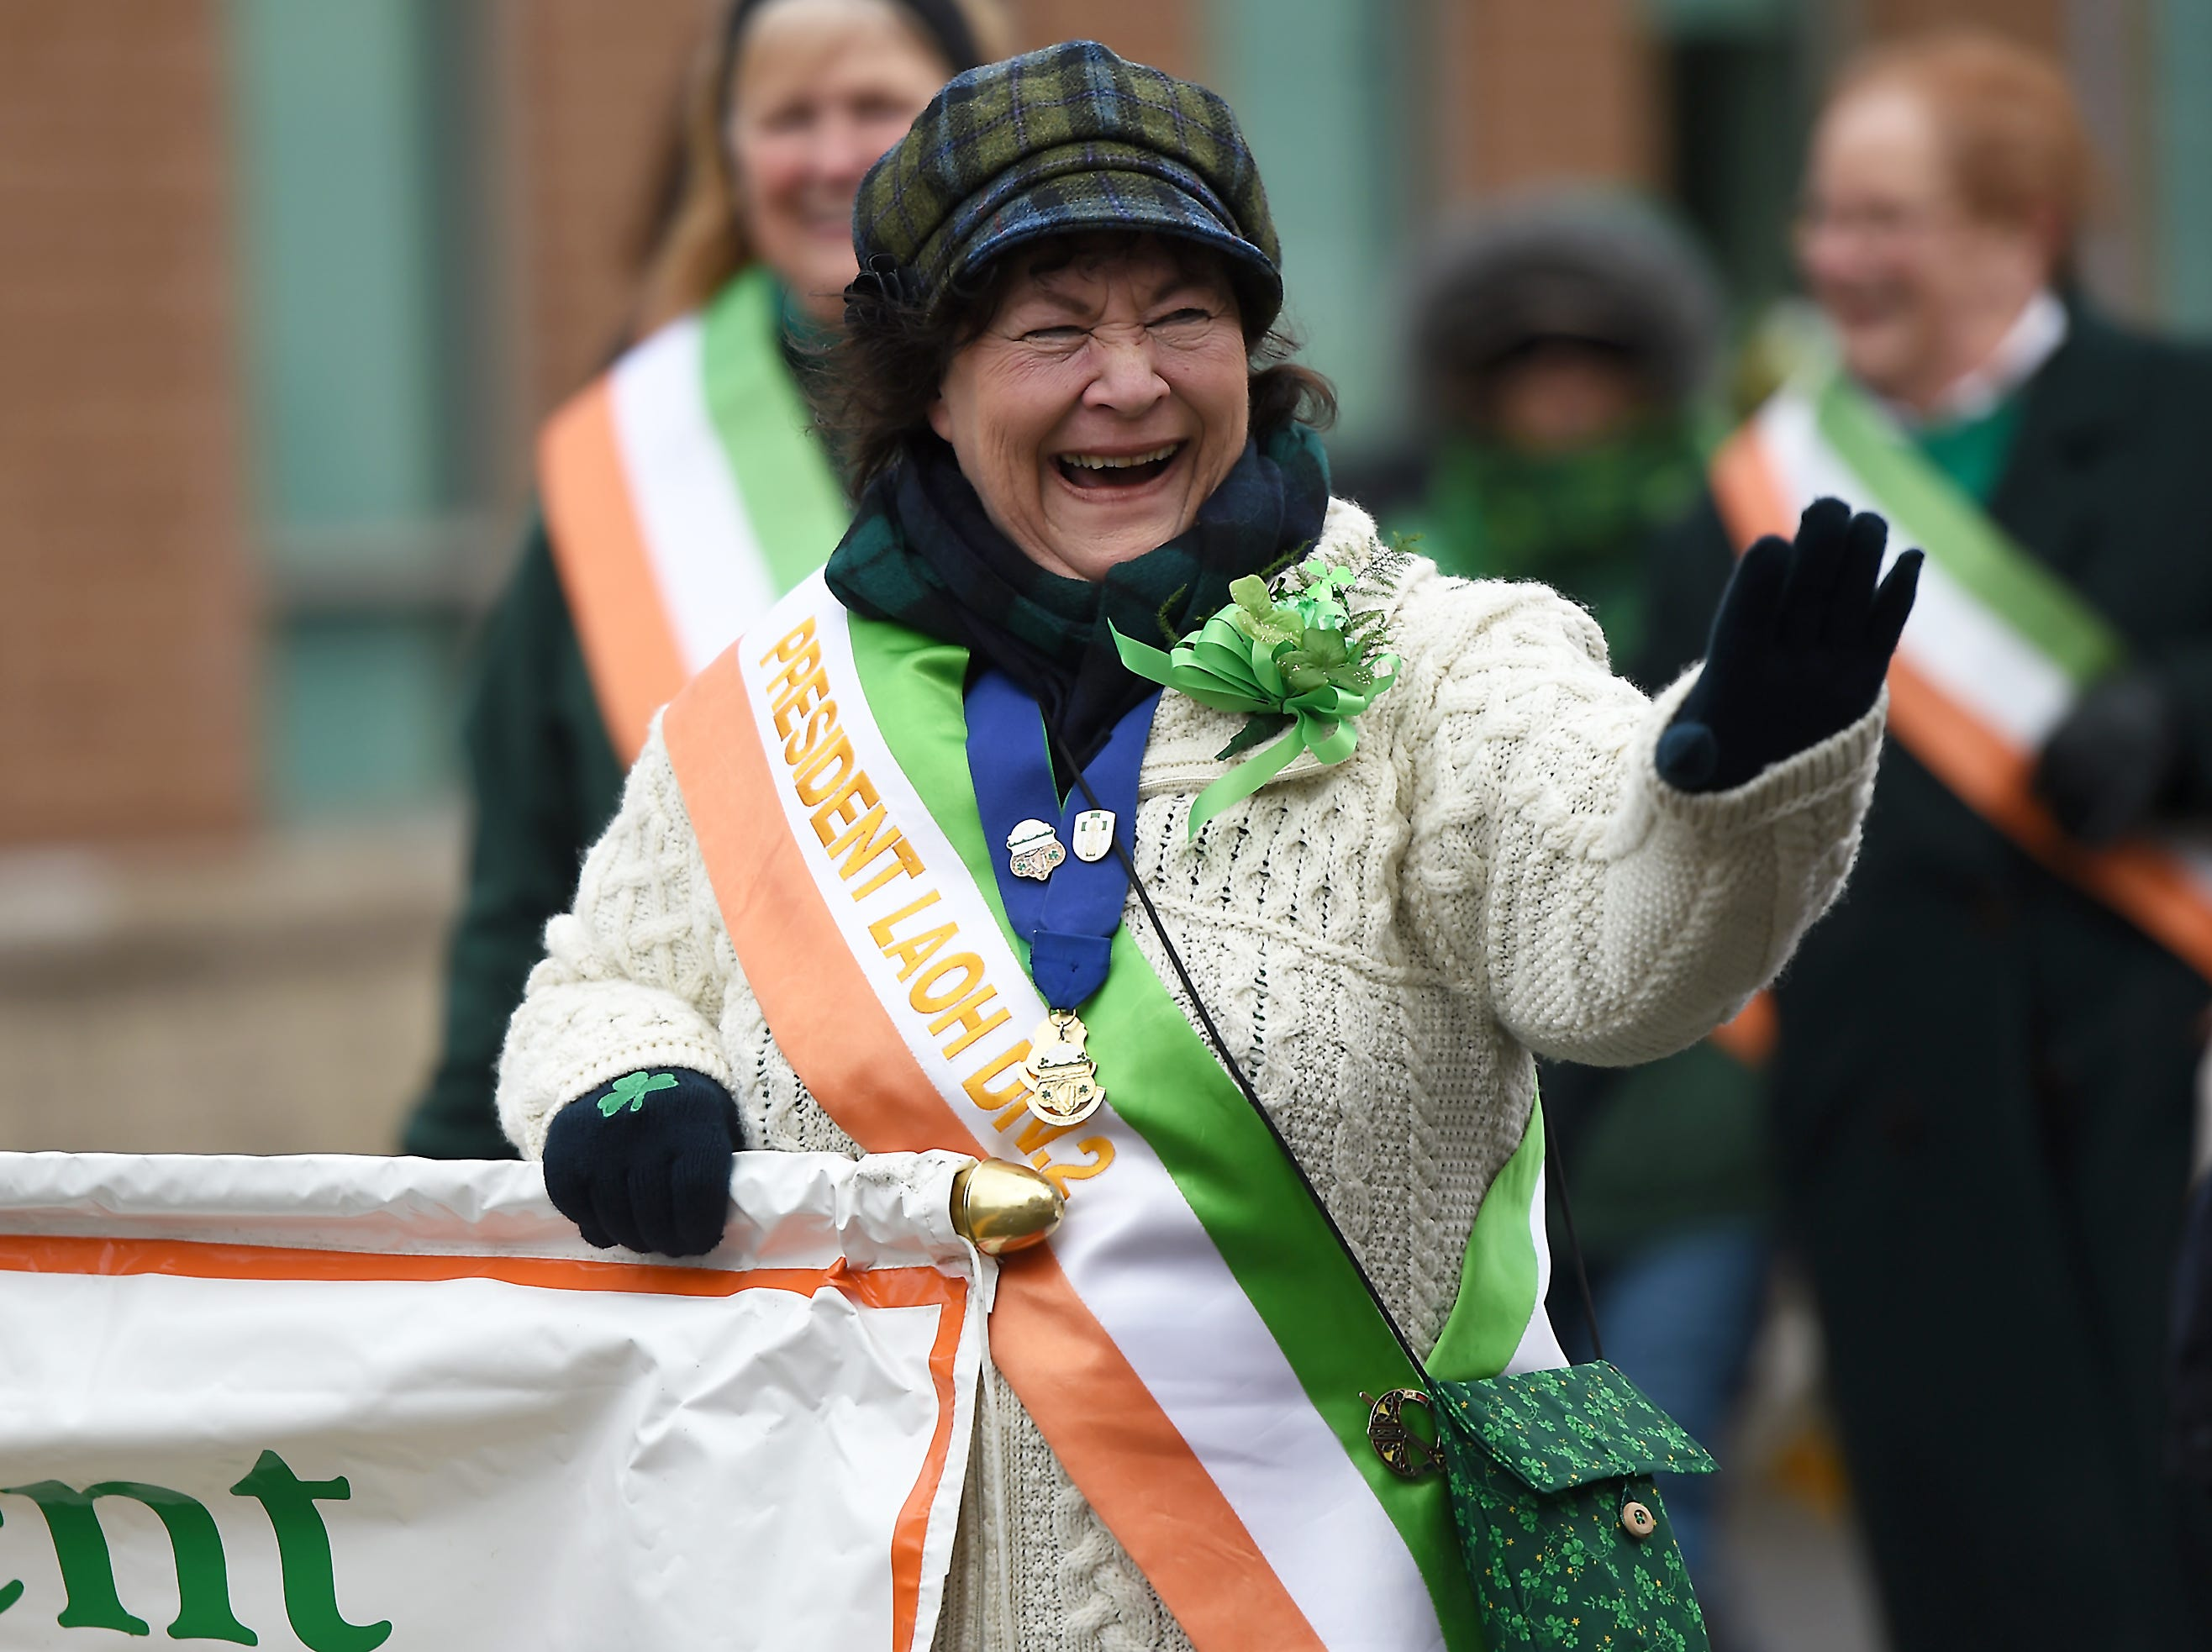 2018: The 51st annual St. Patrick's Day Parade in downtown Binghamton, March 3, 2018.